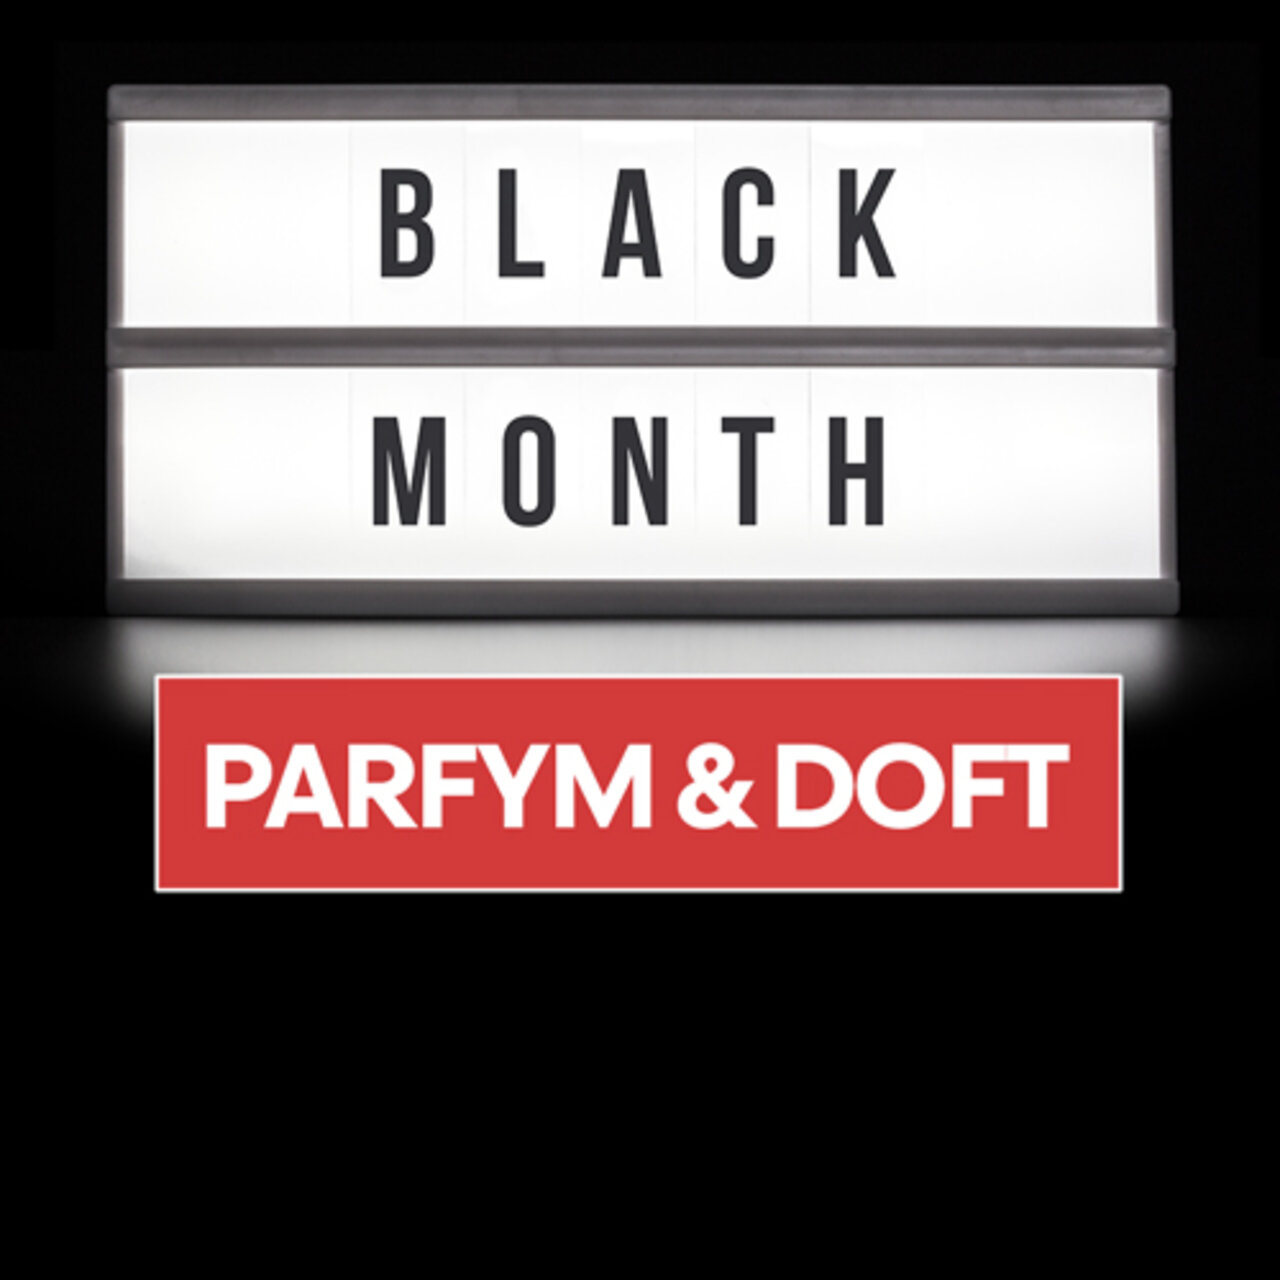 /parfym?f_Other=Black%20Month